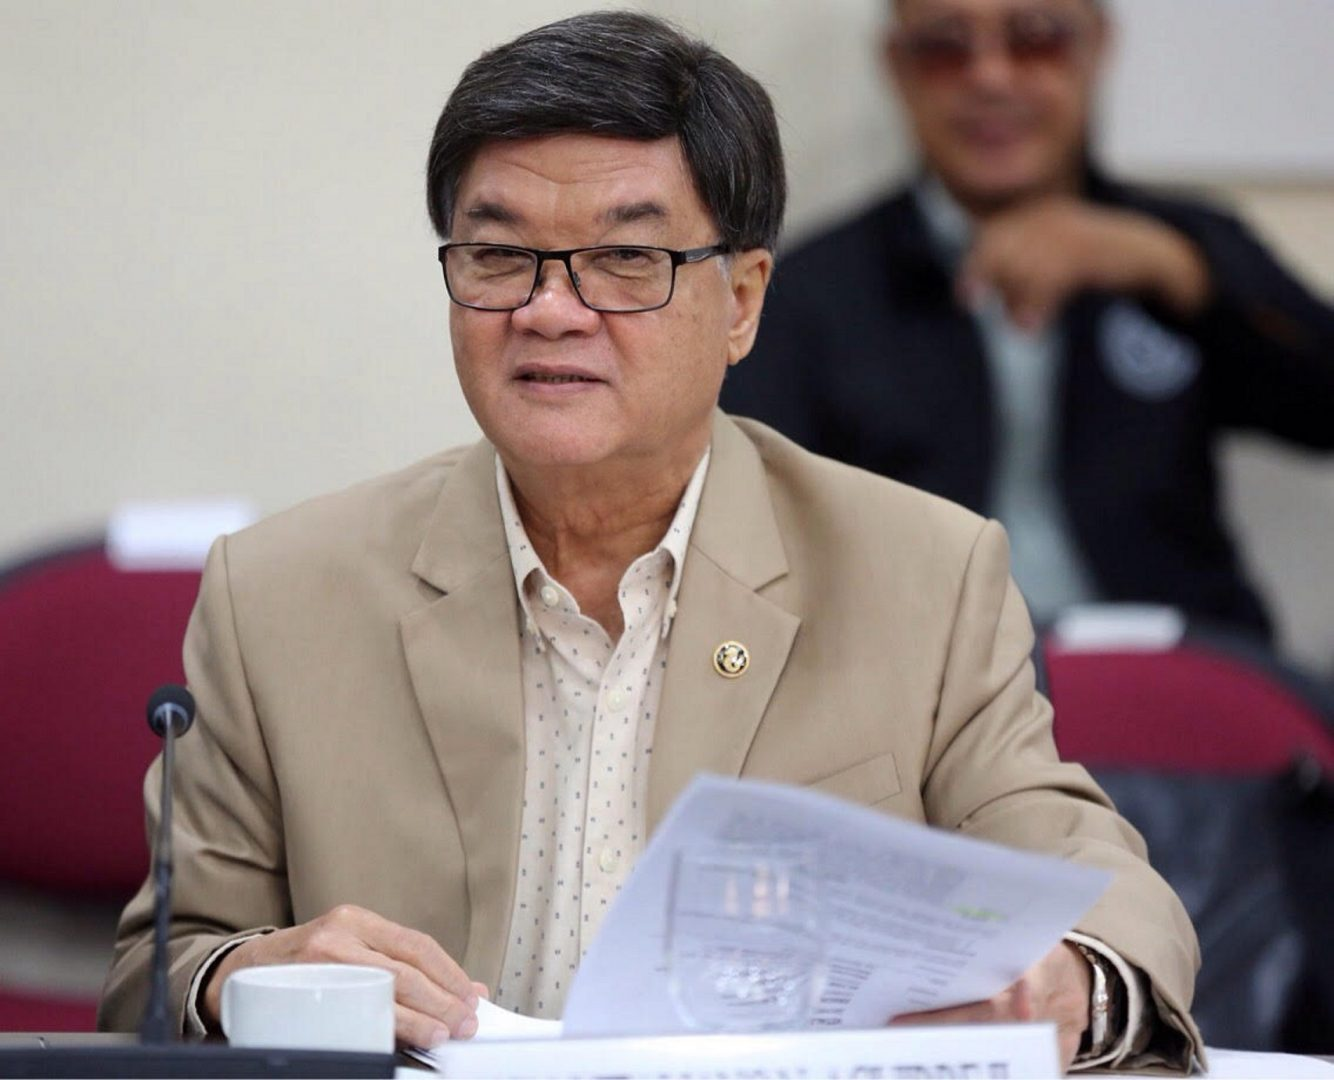 Jurists 'cleared' to testify in impeachment case